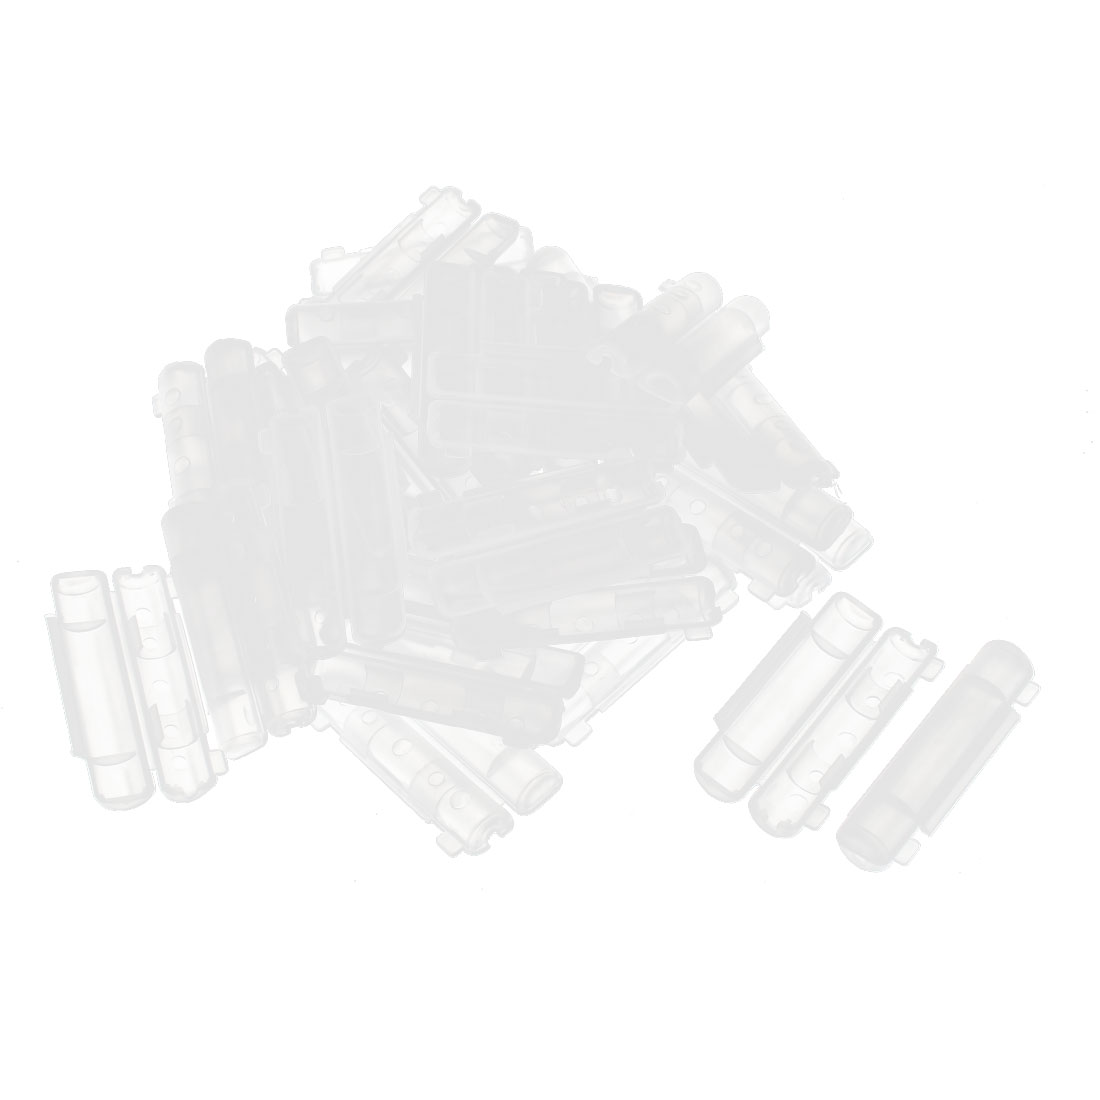 30 Pcs Clear Plastic Insulation PCB Fuse Holder Cover 30 x 10mm